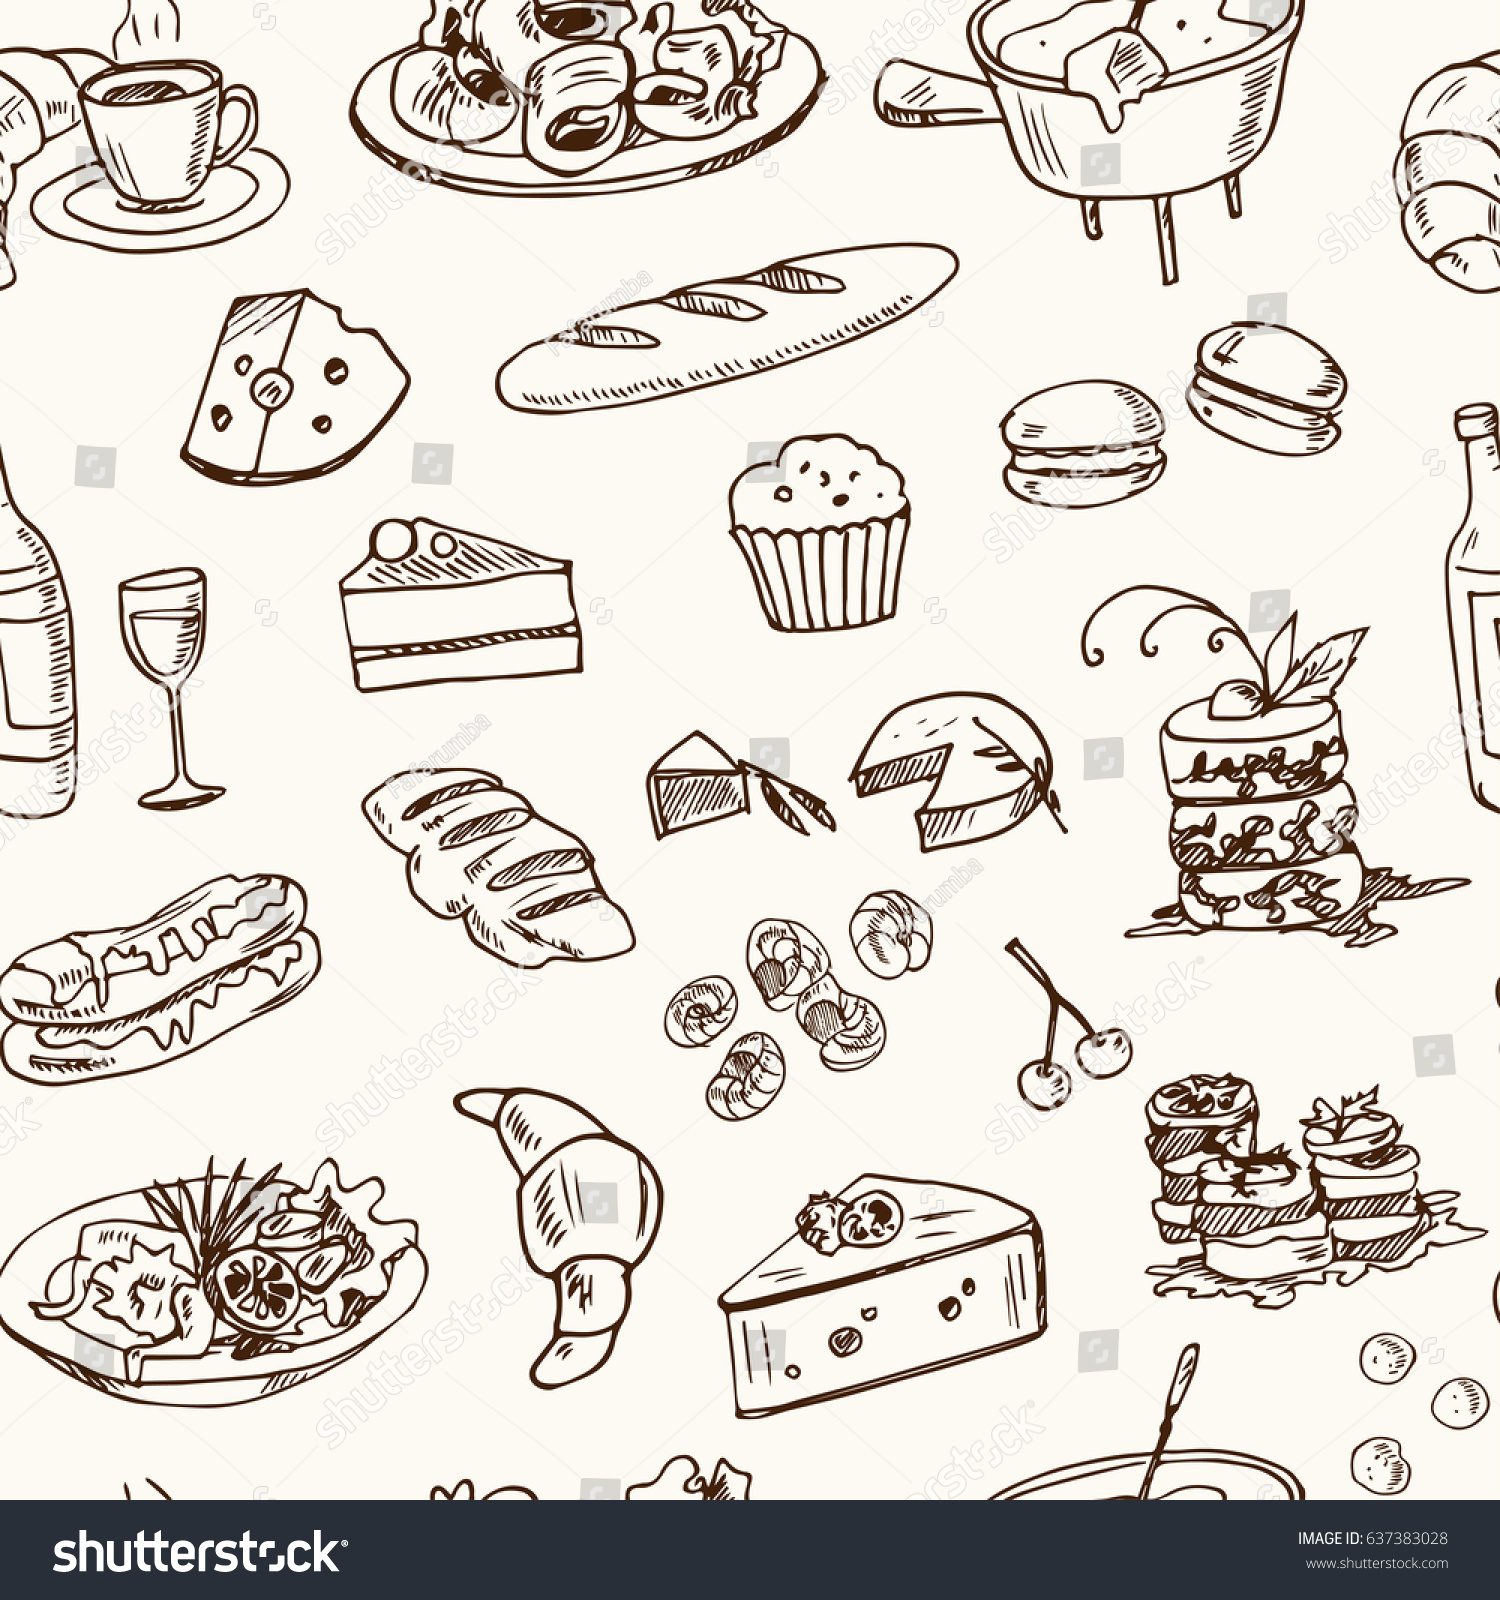 hand drawn french cuisine food sketches stock vector (royalty free